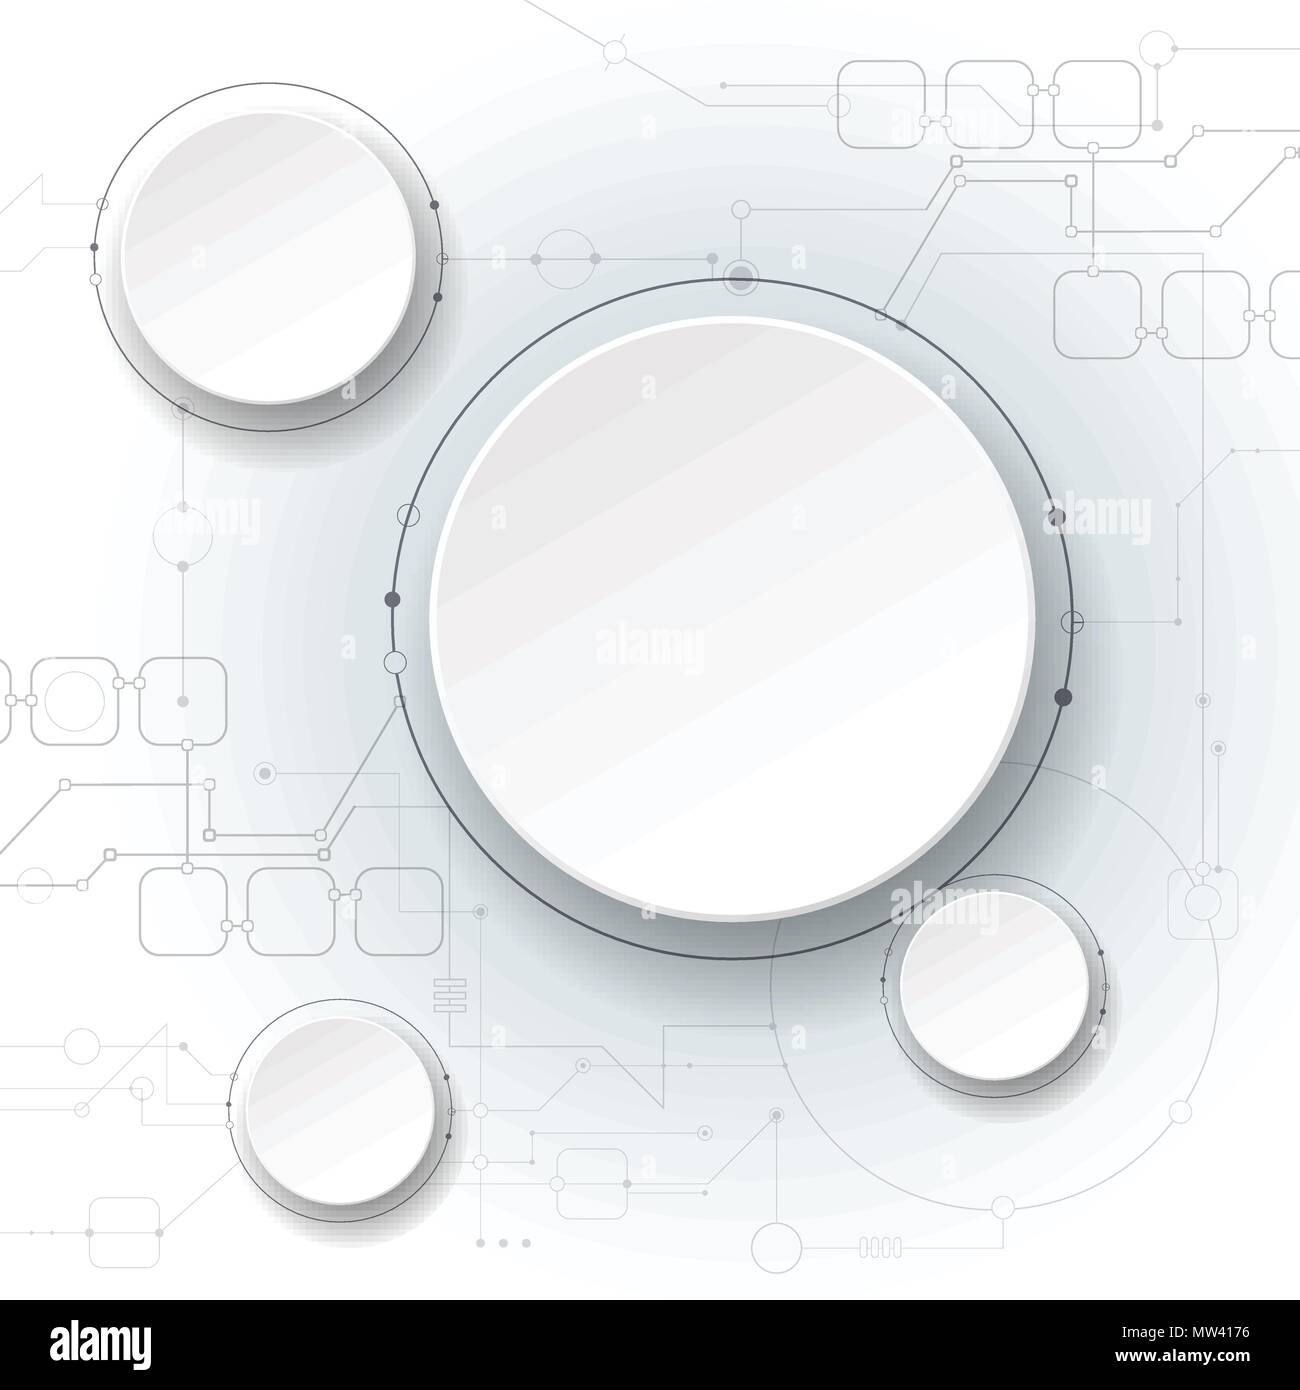 Vector Illustration Abstract Futuristic Circuit Board On Light Gray Blank Background Modern Hi Tech Digital Technology Concept White 3d Paper Circ